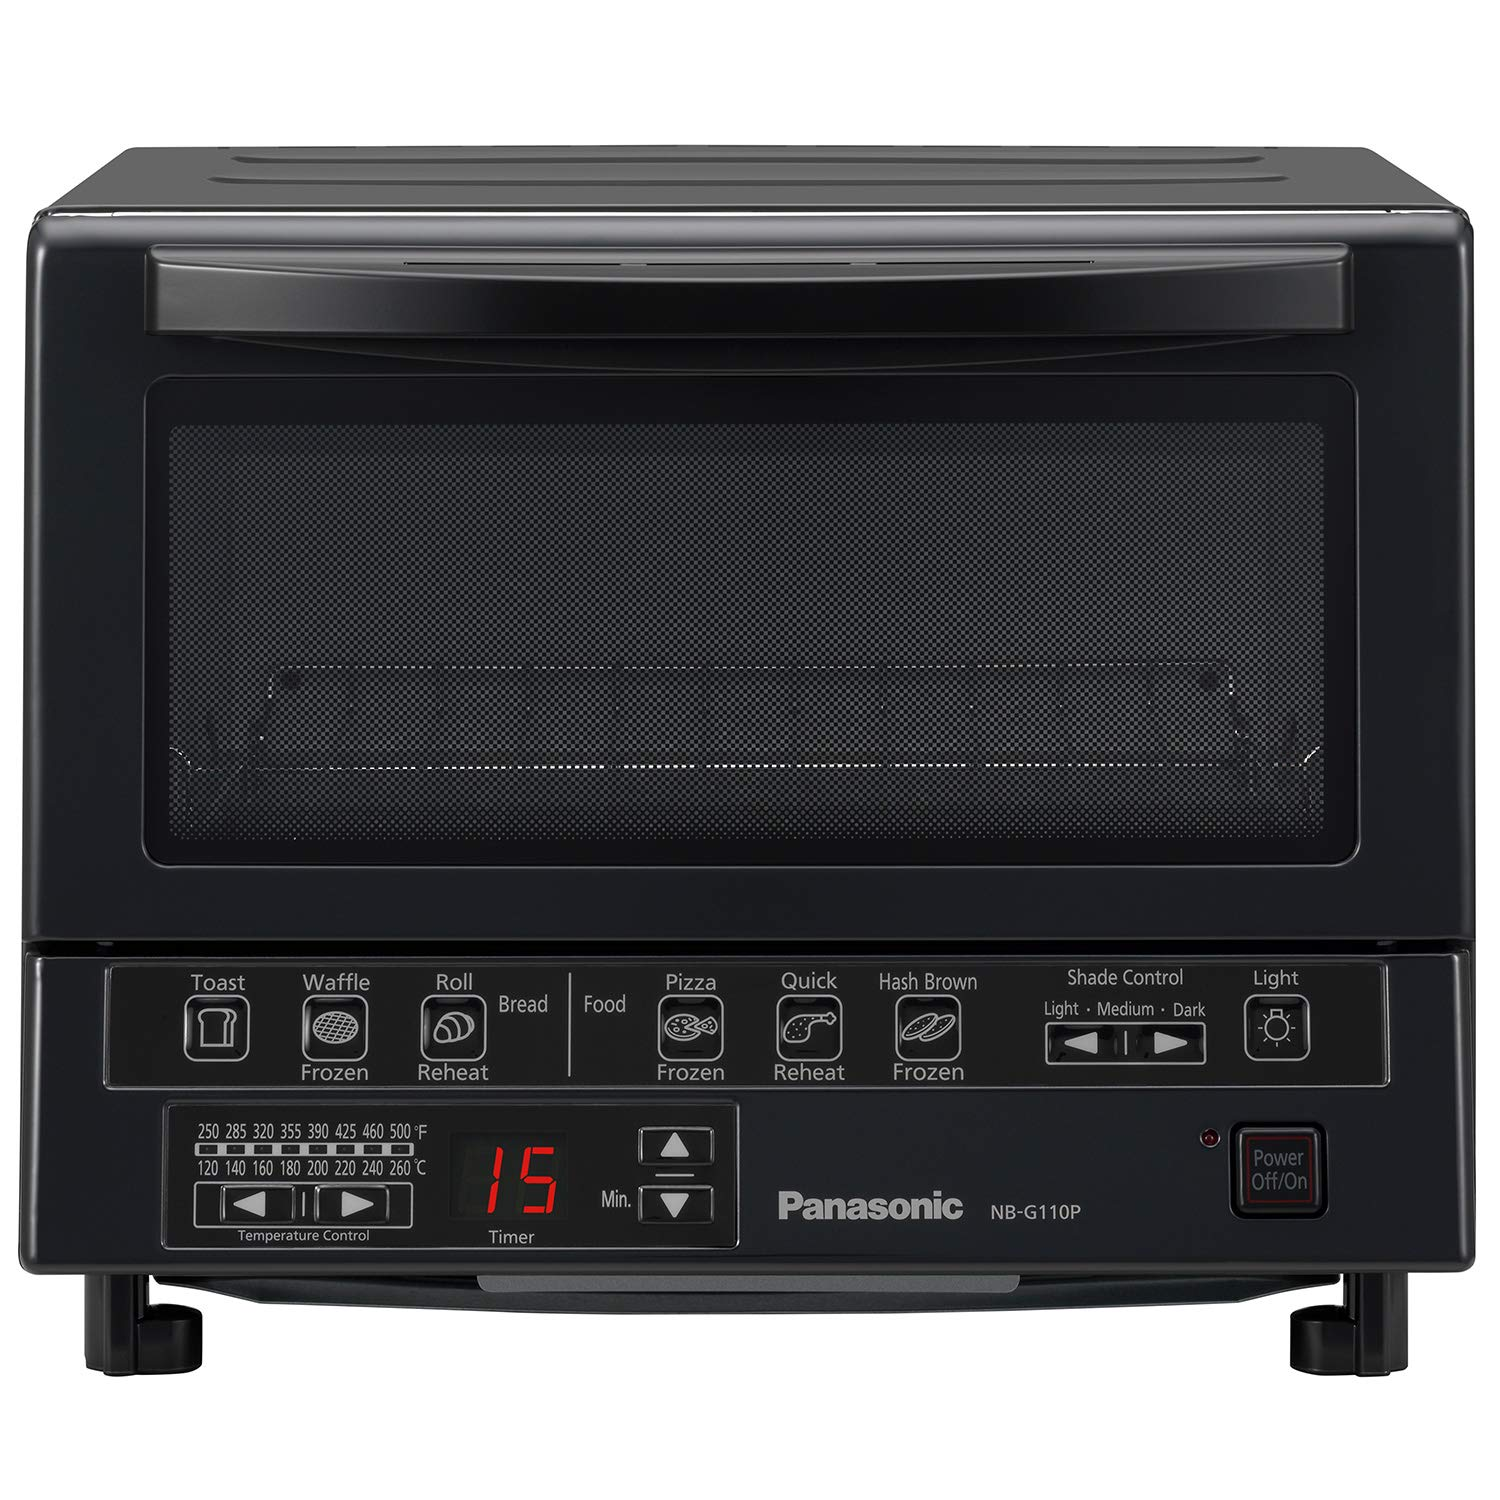 Panasonic NB-G110P-K Toaster Oven Black